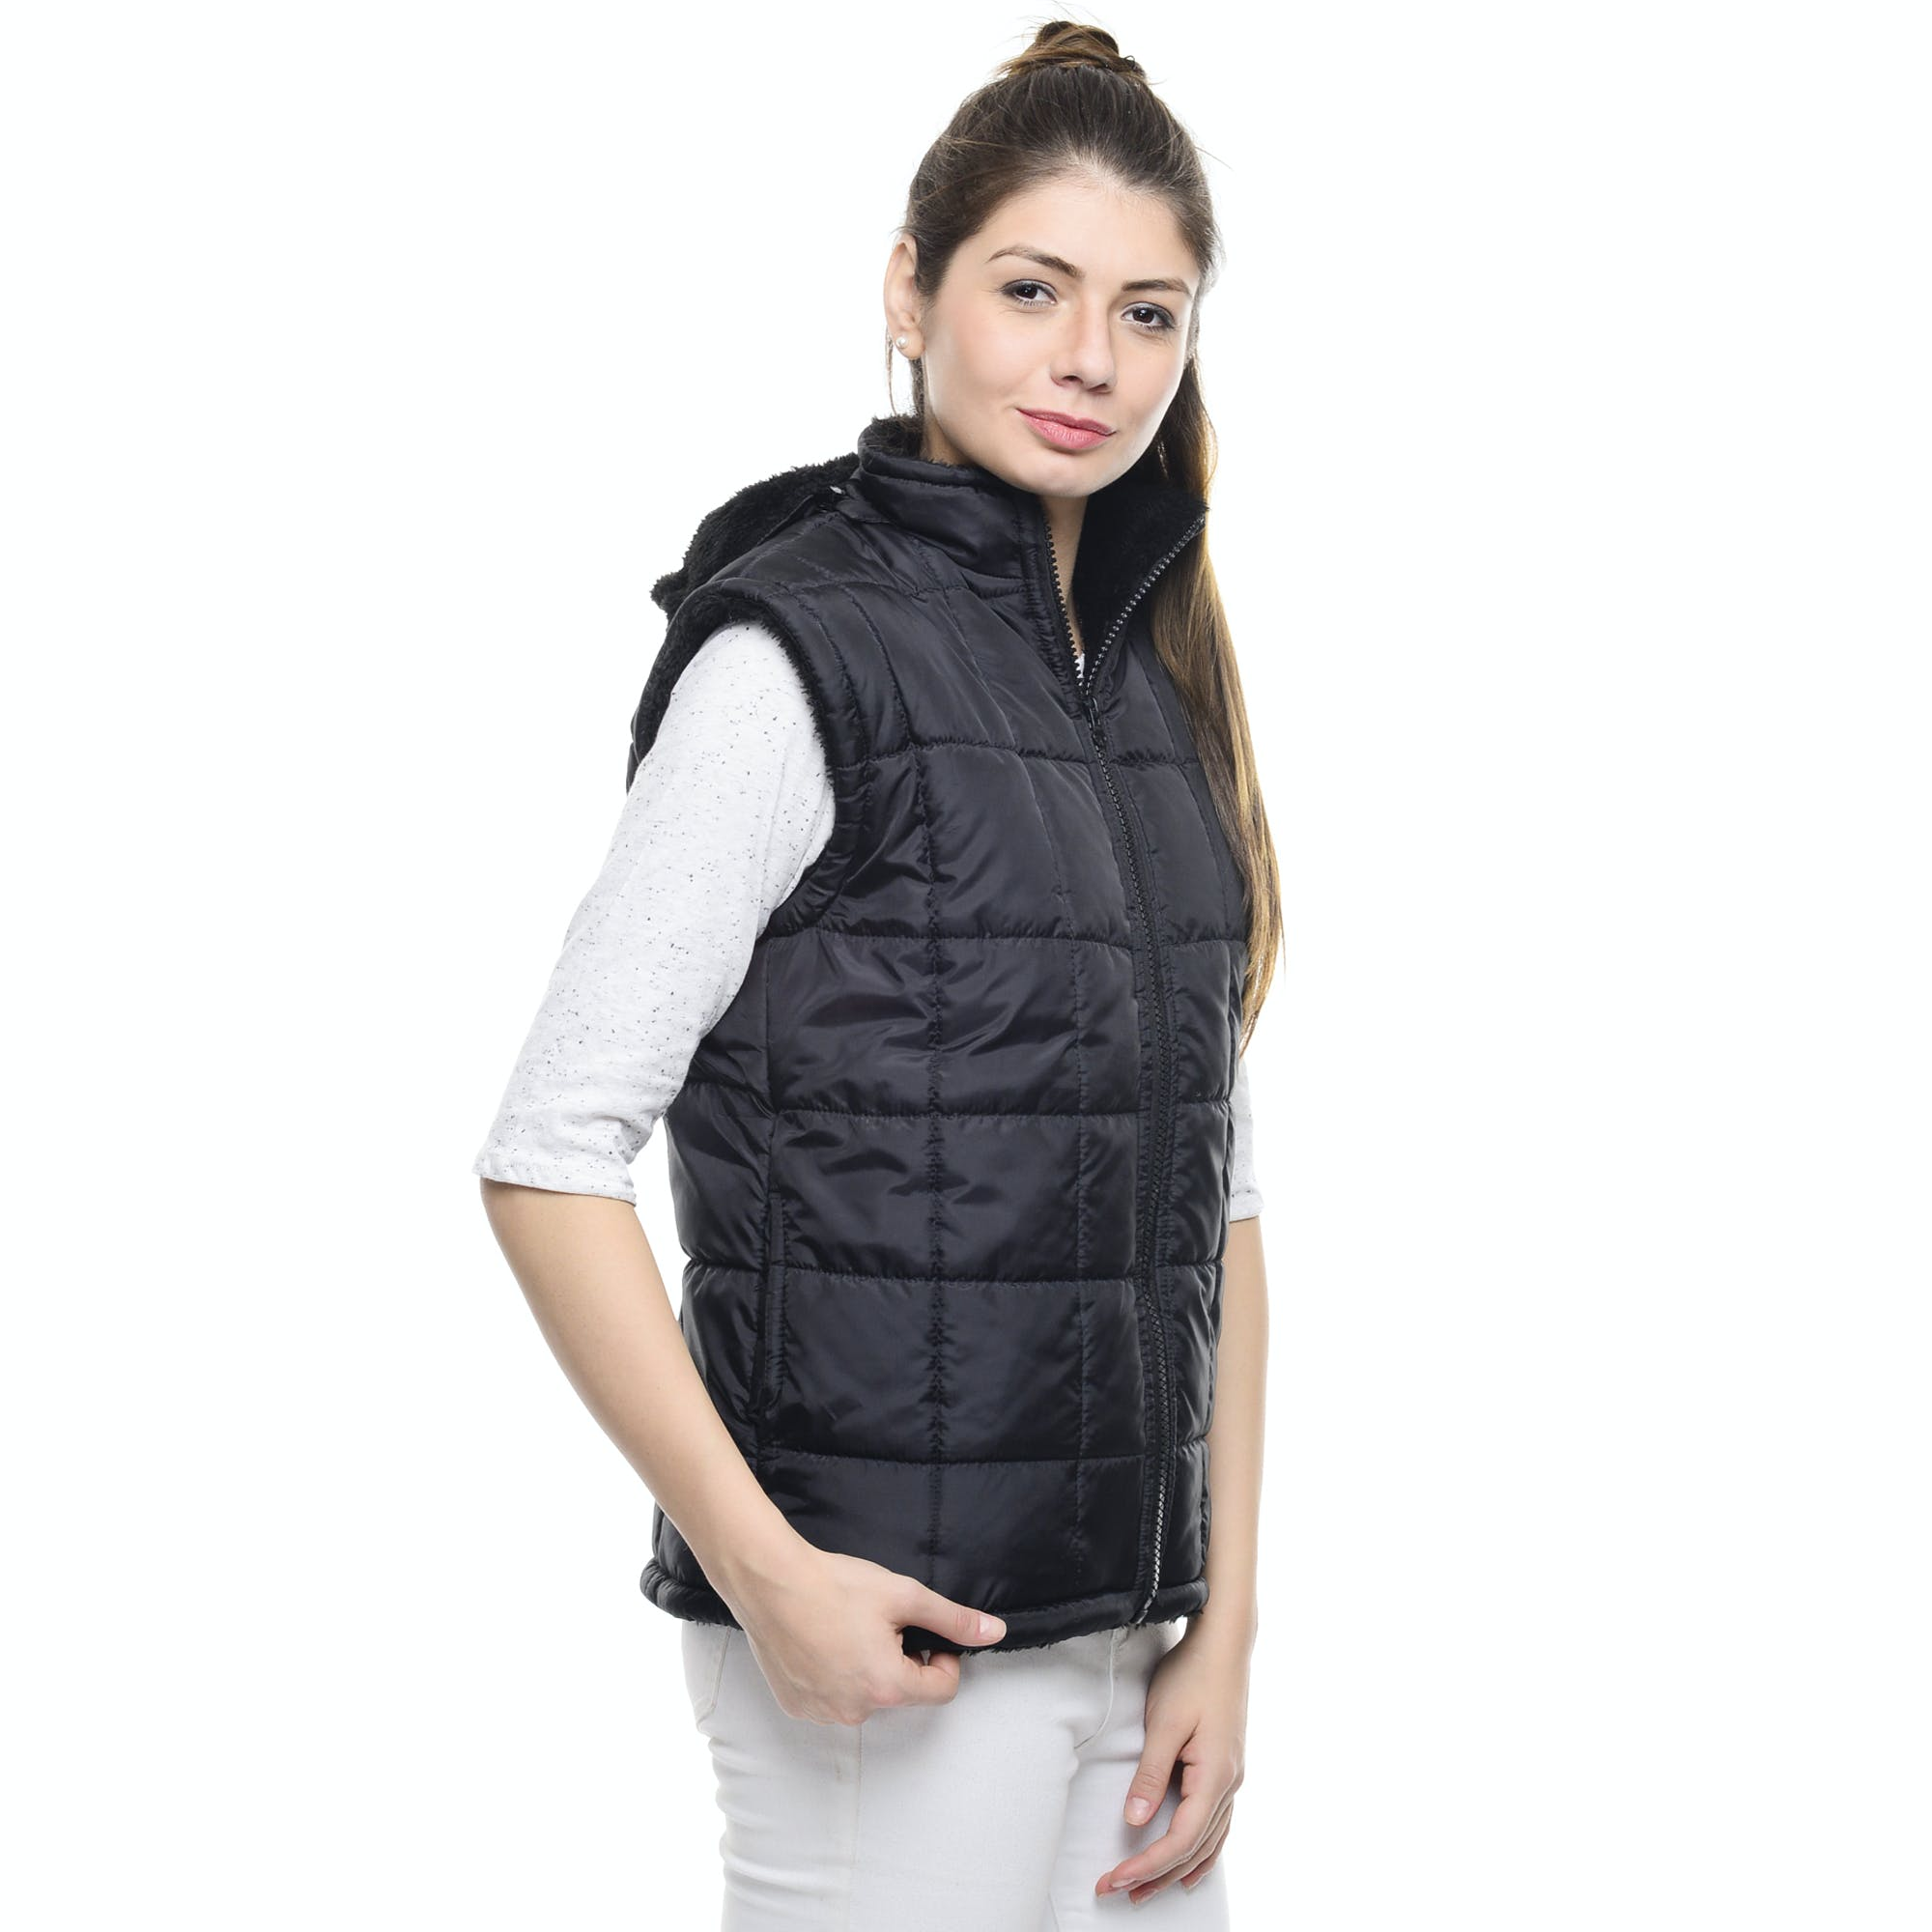 Woman Standing Wearing Black Bubble Zip Turtleneck Vest